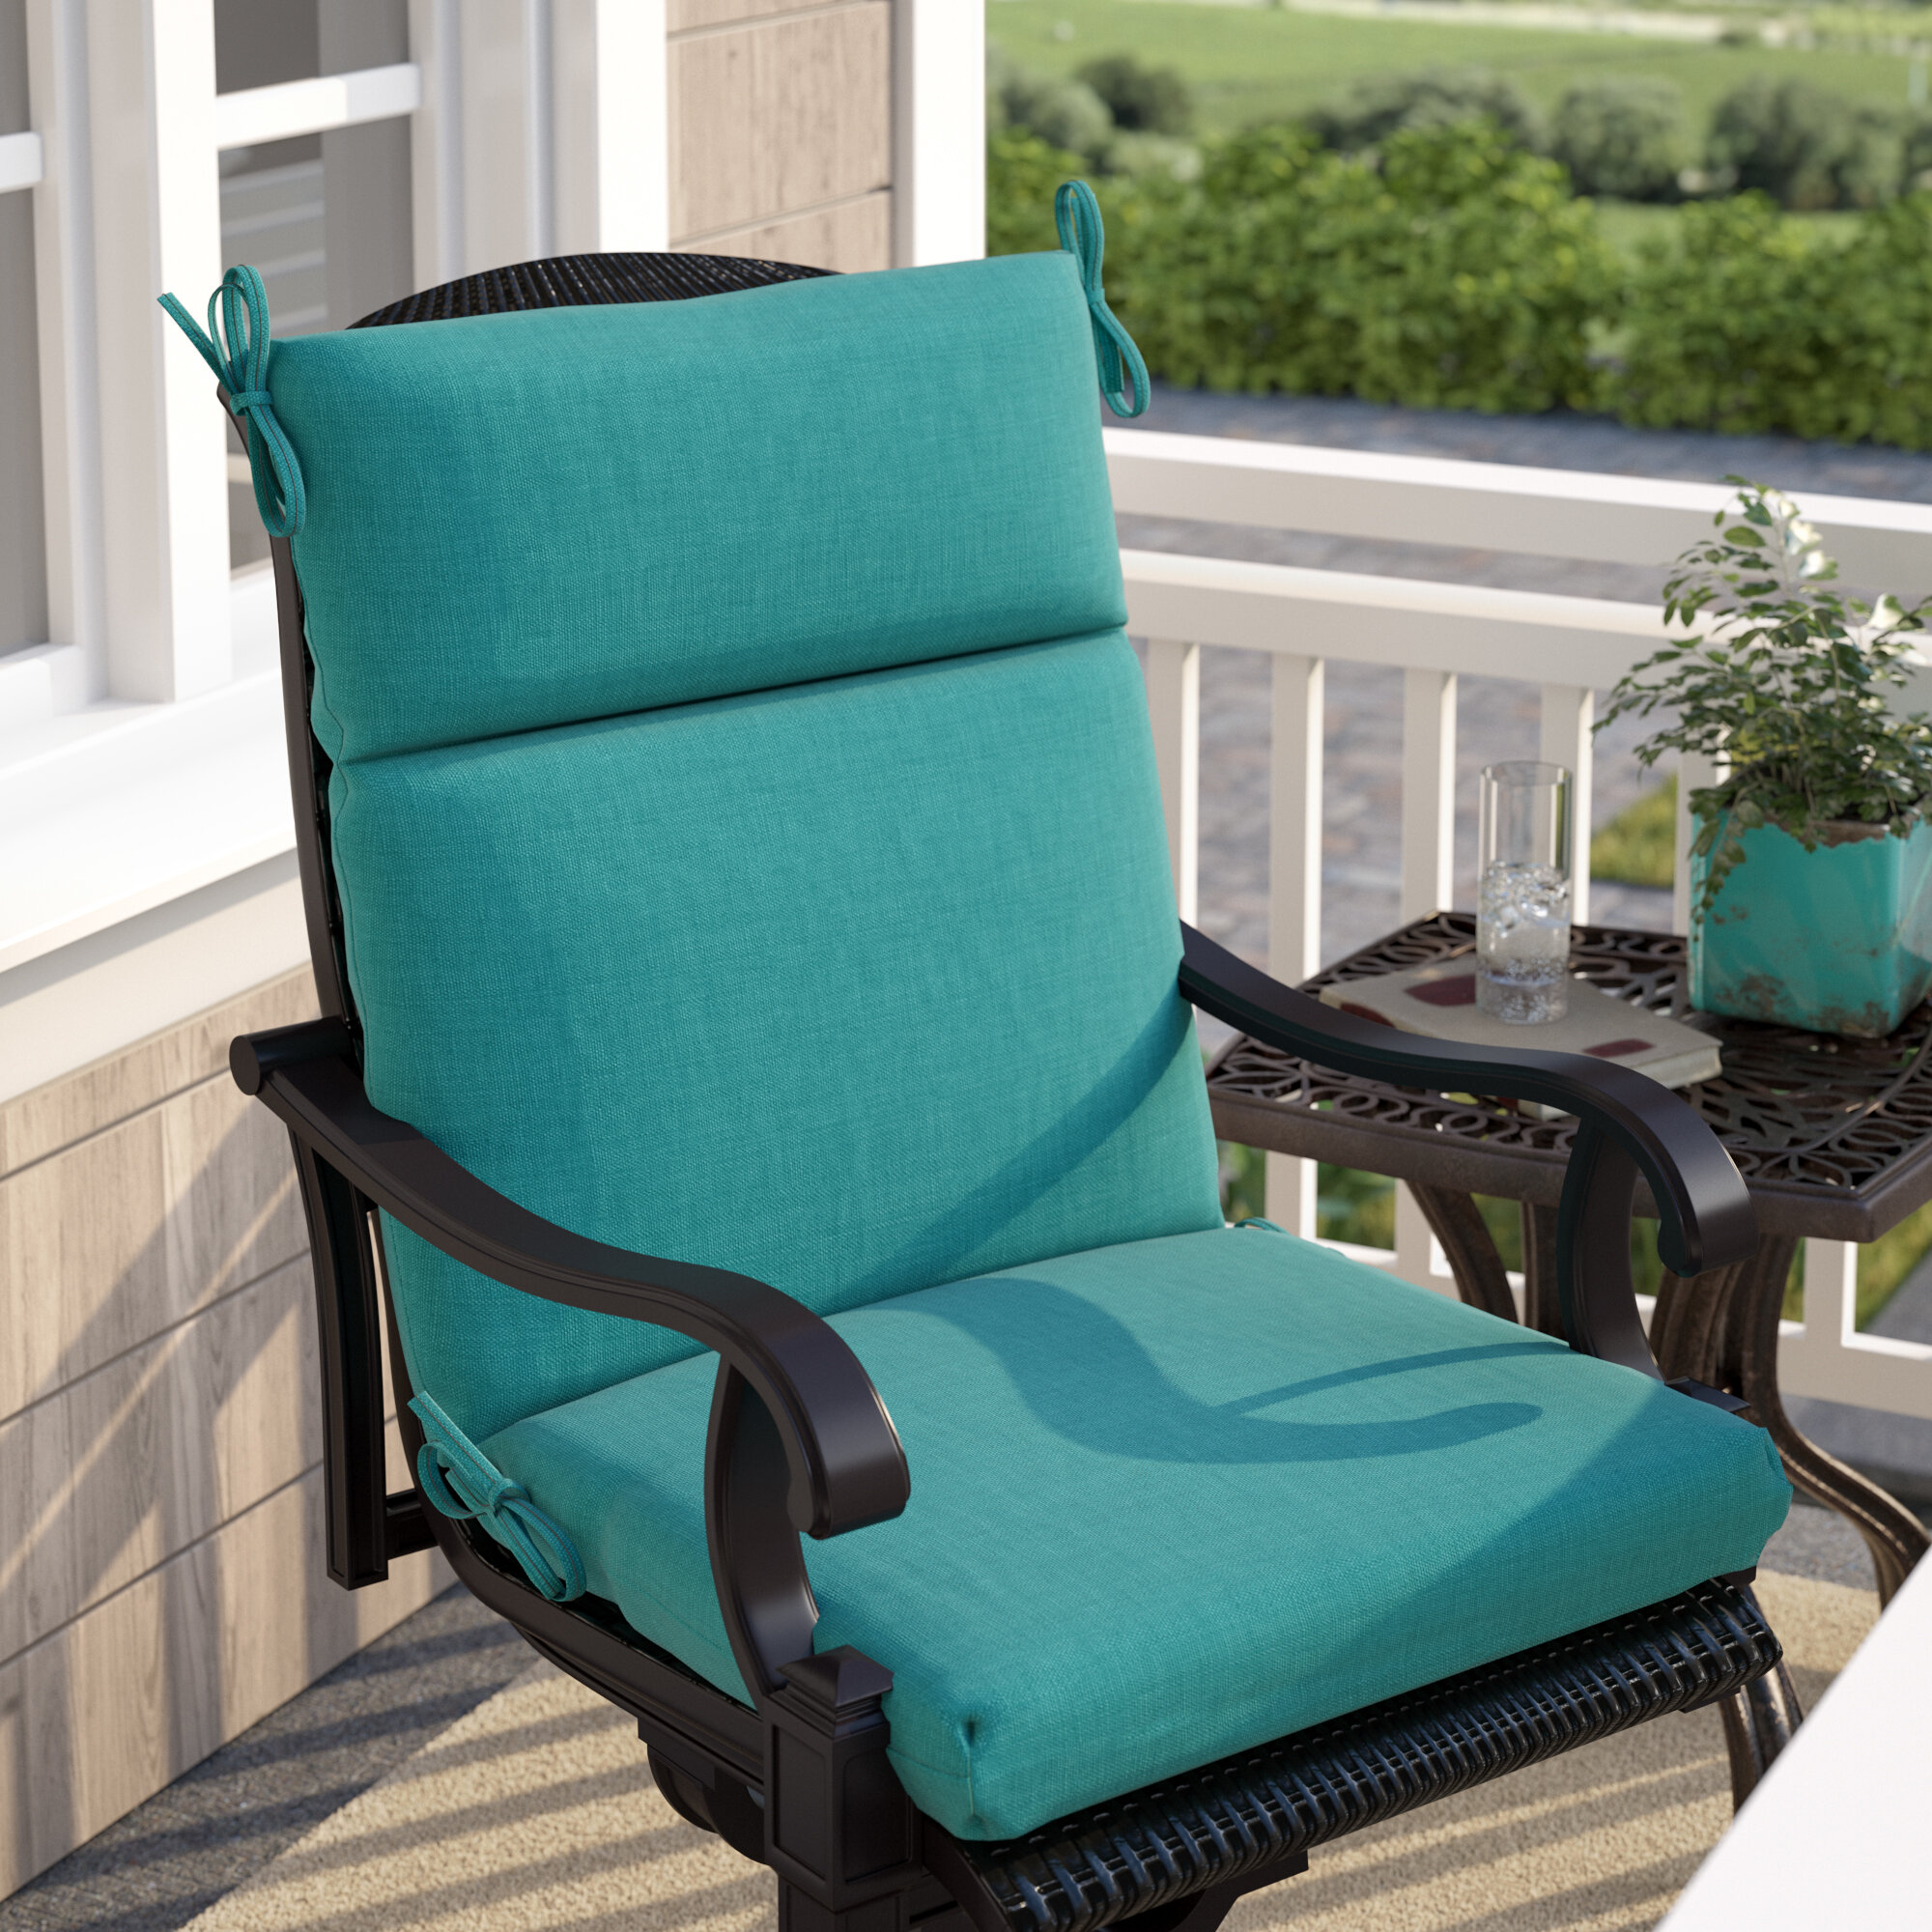 Attirant Three Posts Indoor/Outdoor Adirondack Chair Cushion U0026 Reviews | Wayfair